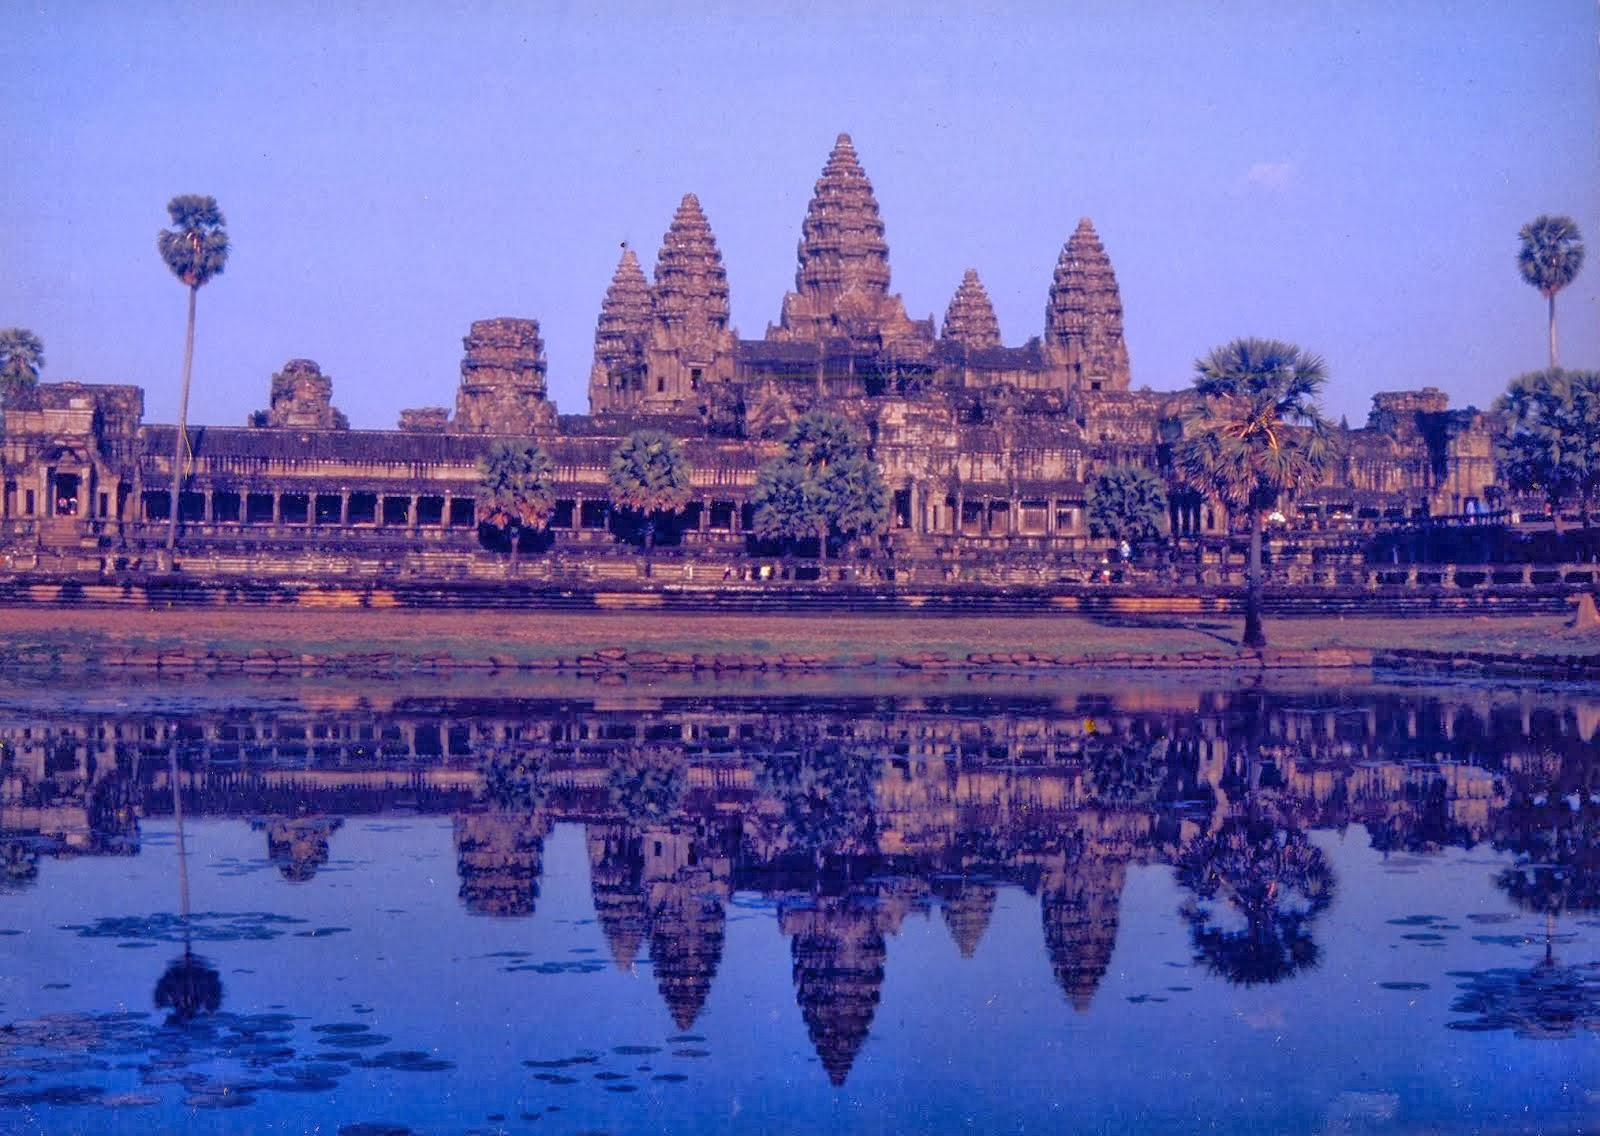 Angkor Wat, 12th Century